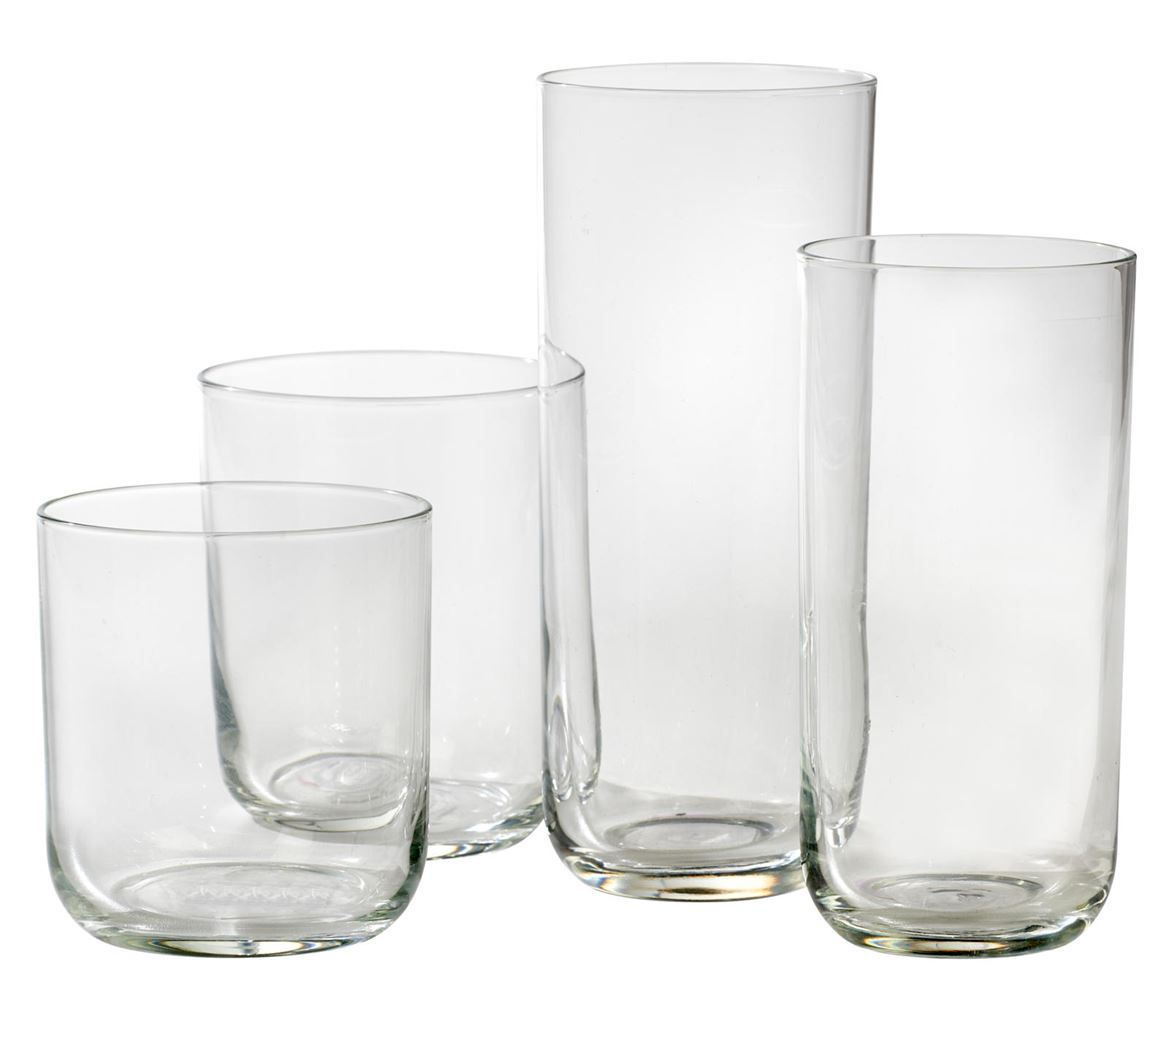 BLISS Verre transparent H 8.5 cm; Ø 7.7 cm_bliss-verre-transparent-h-8-5-cm;-ø-7-7-cm